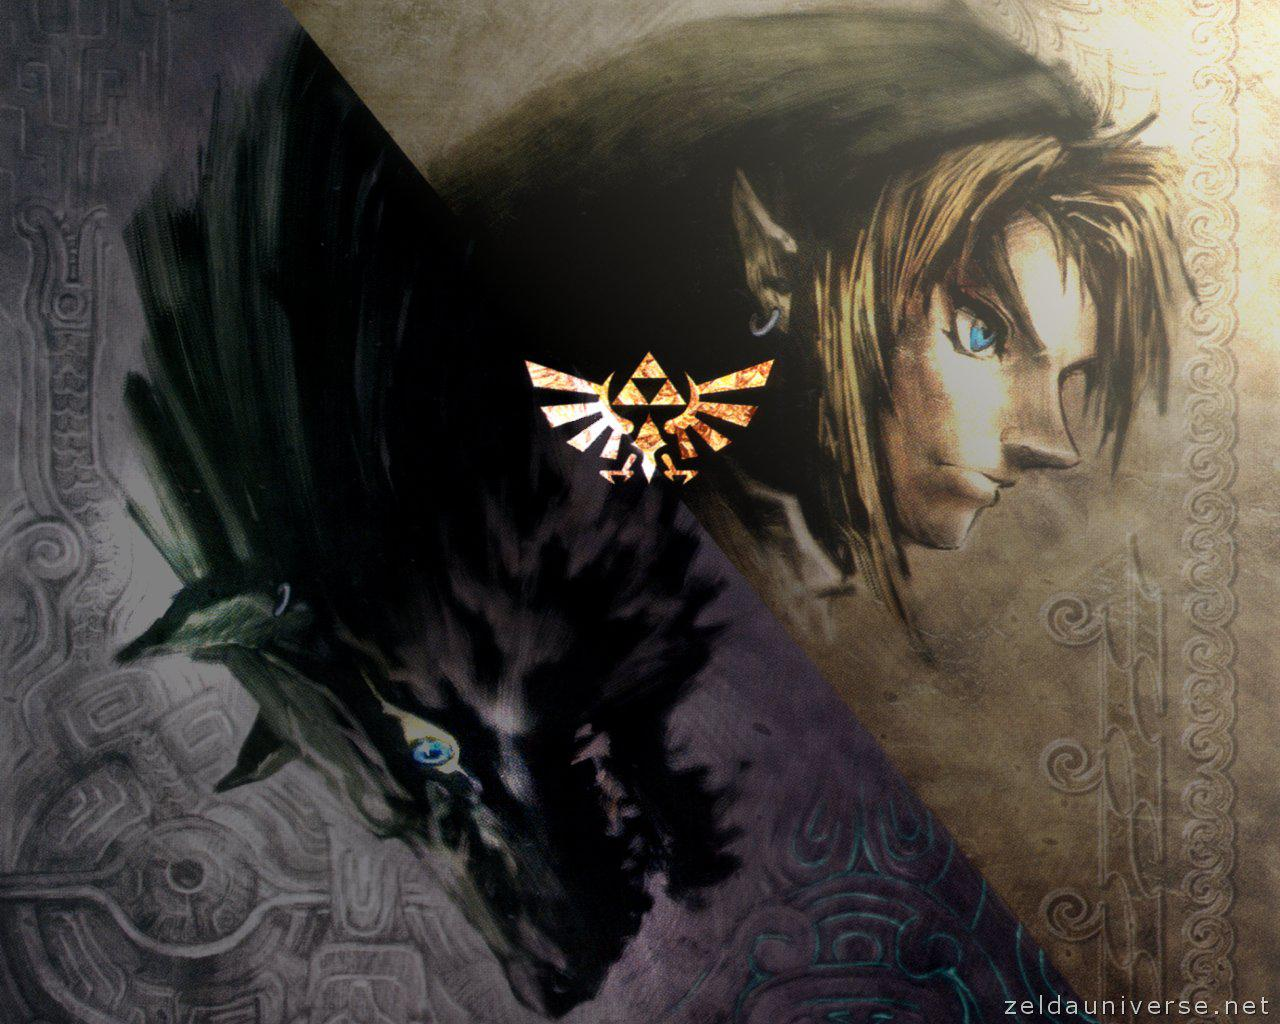 Zelda Twilight Princess Hd Suena Para Wii U Meristation